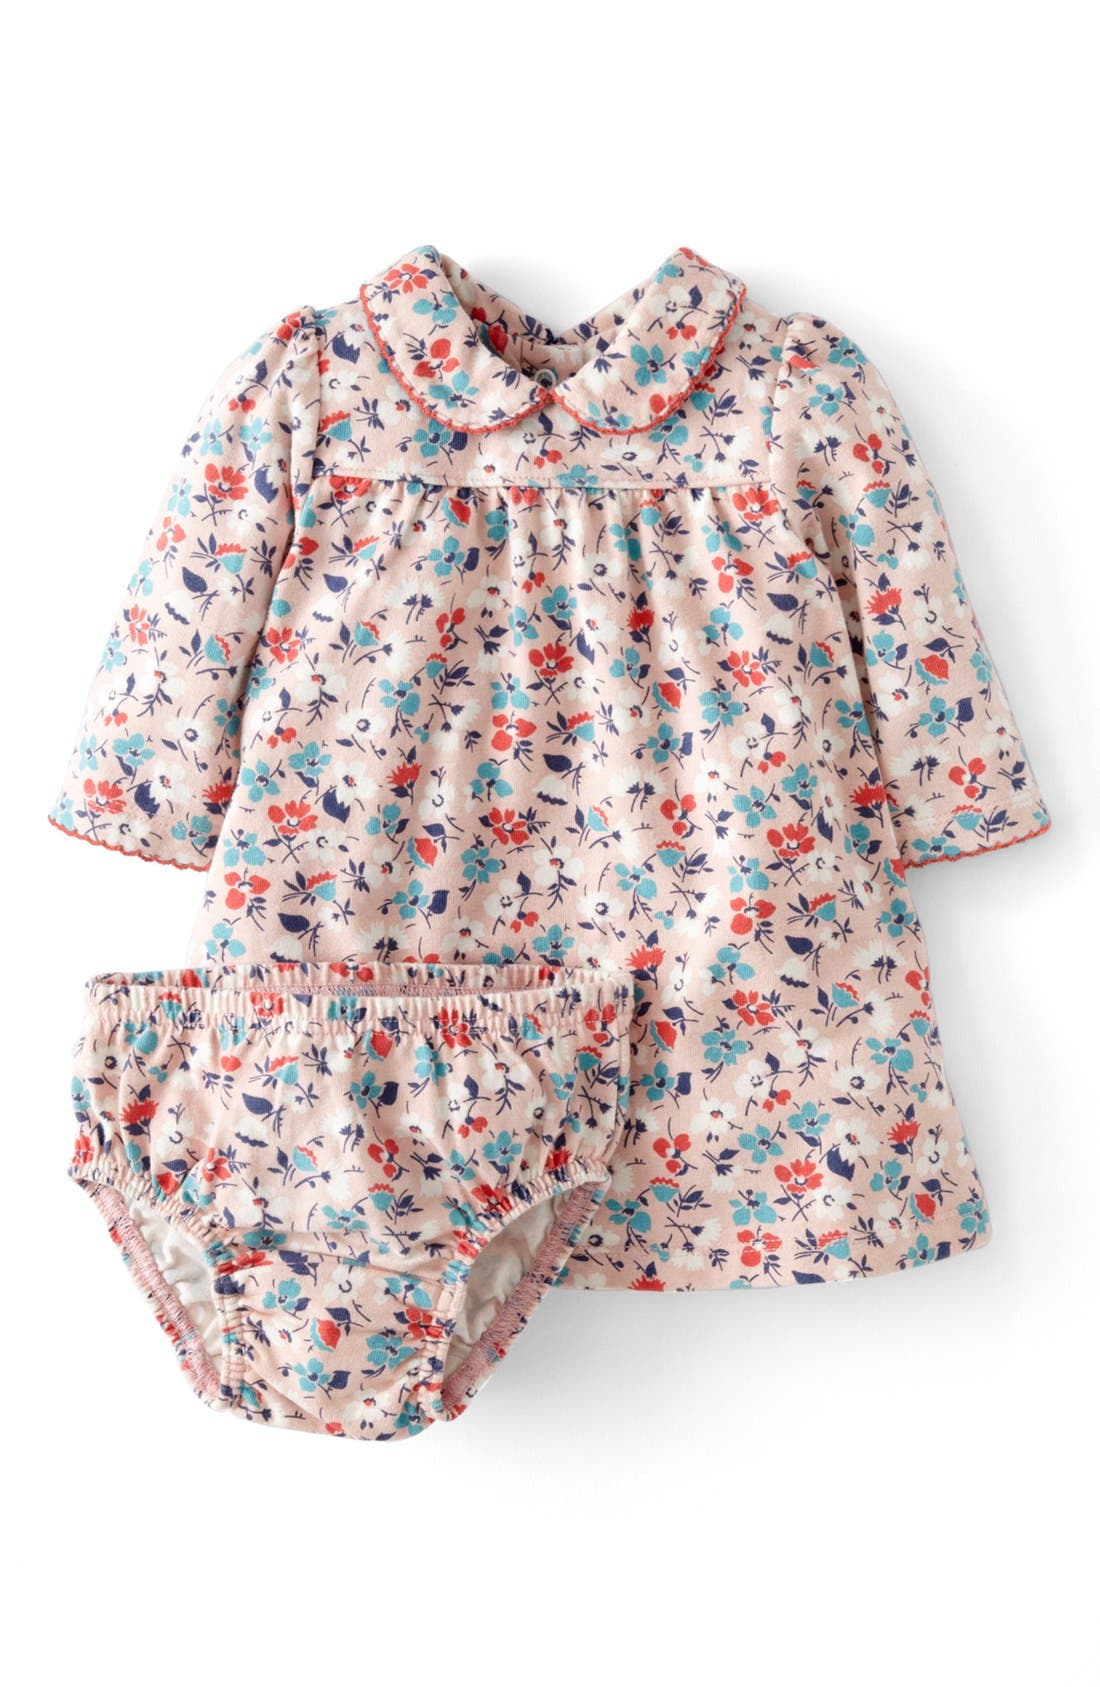 Alternate Image 1 Selected - Mini Boden 'Pretty' Jersey Dress (Baby Girls)